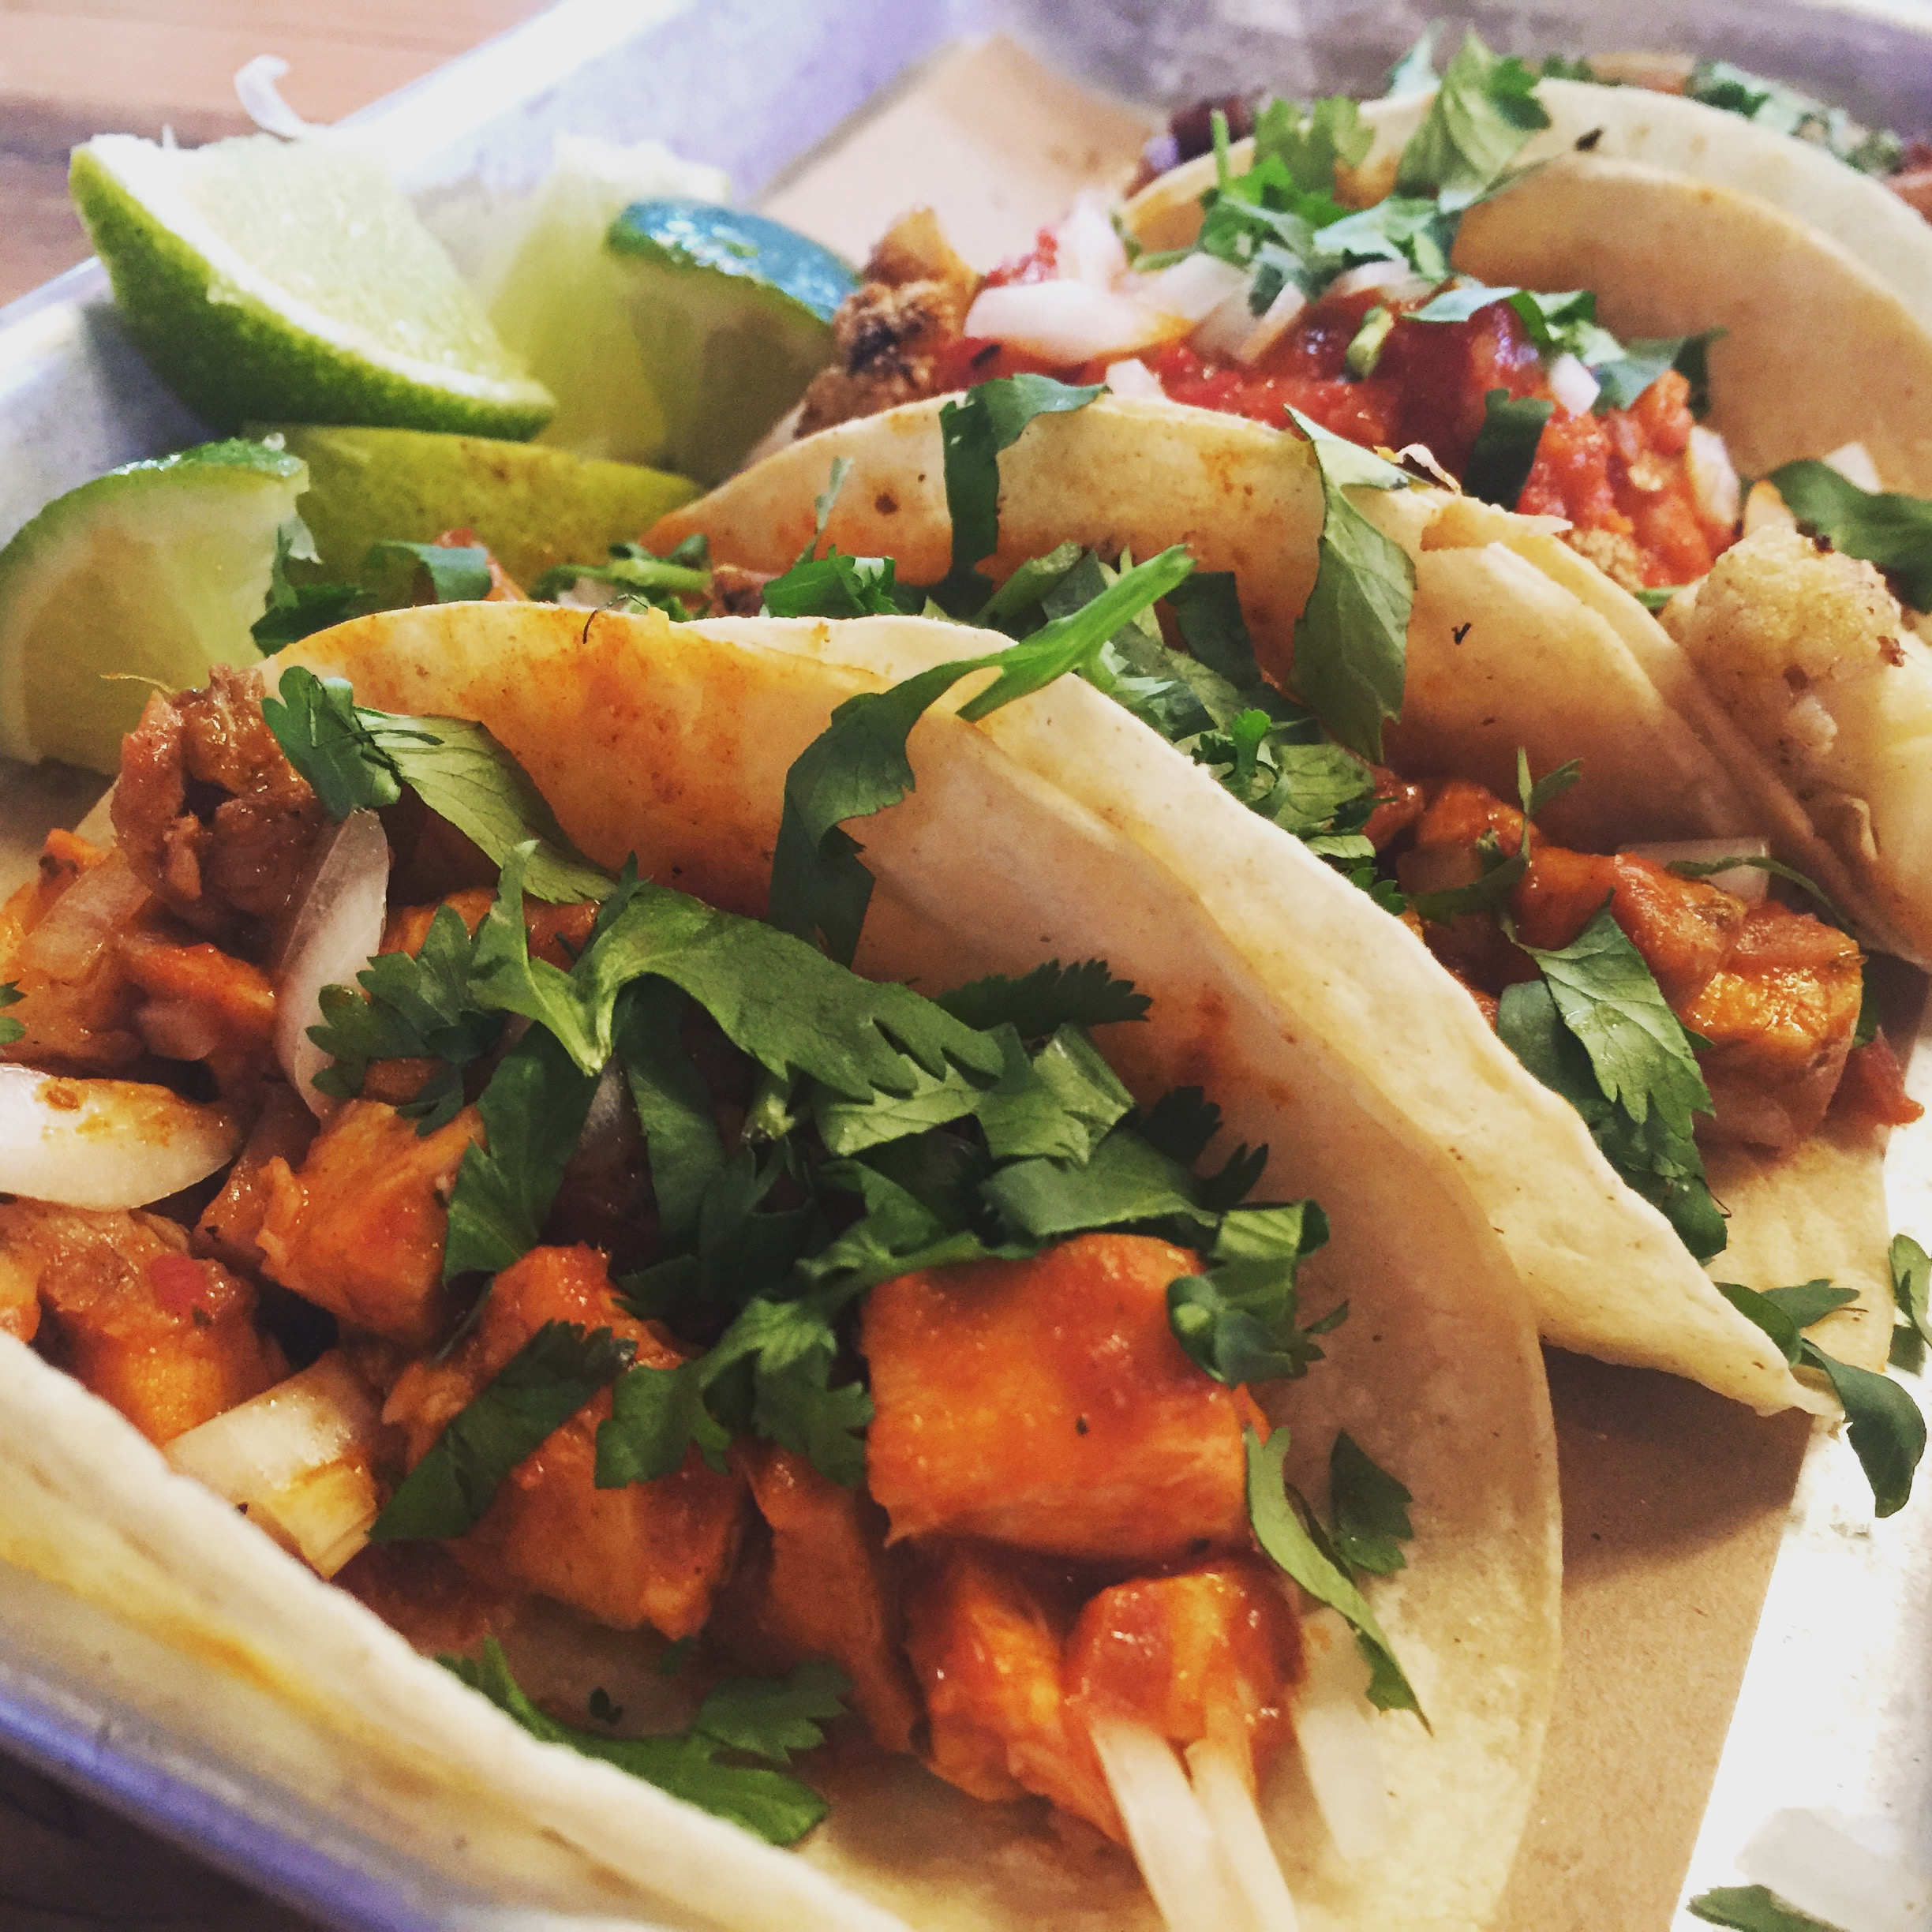 Scrumptious street tacos from BarTaco at 12 South. Photo by Melody Pittman.